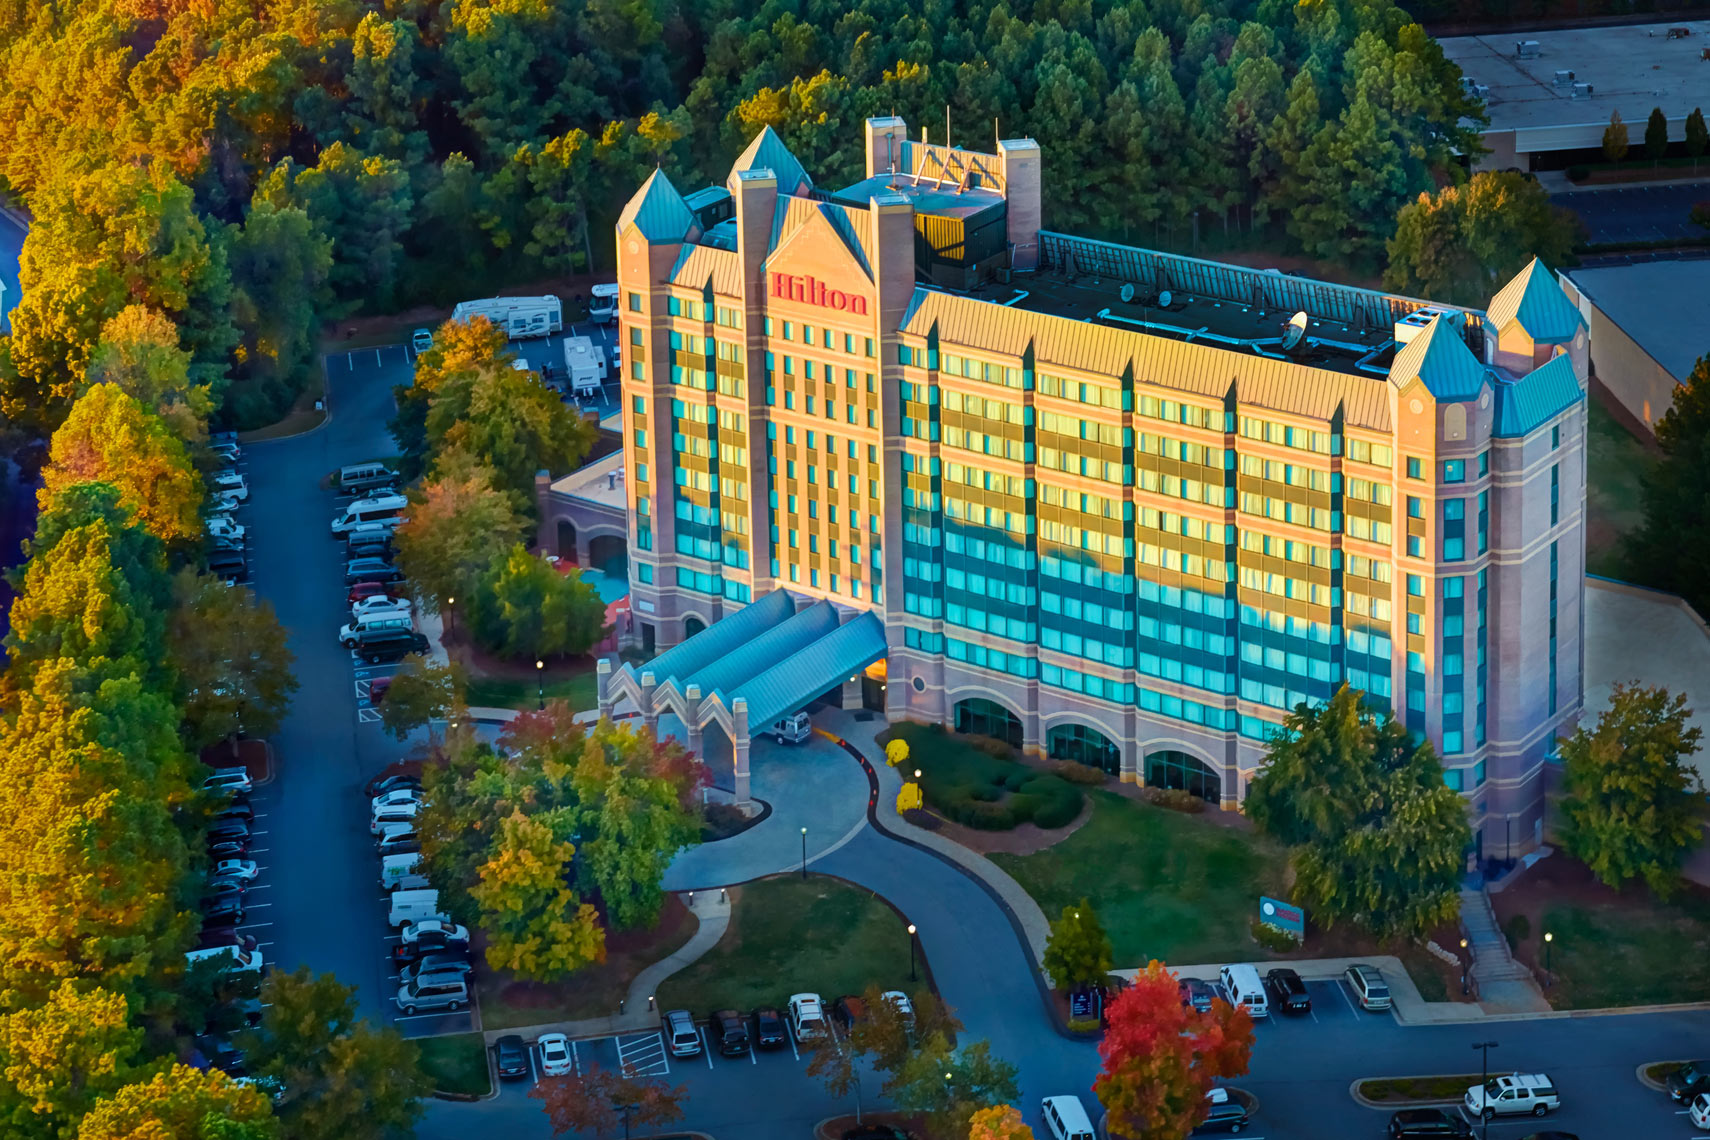 Hilton hotel/Aerial exterior/castle like look/architectural photo